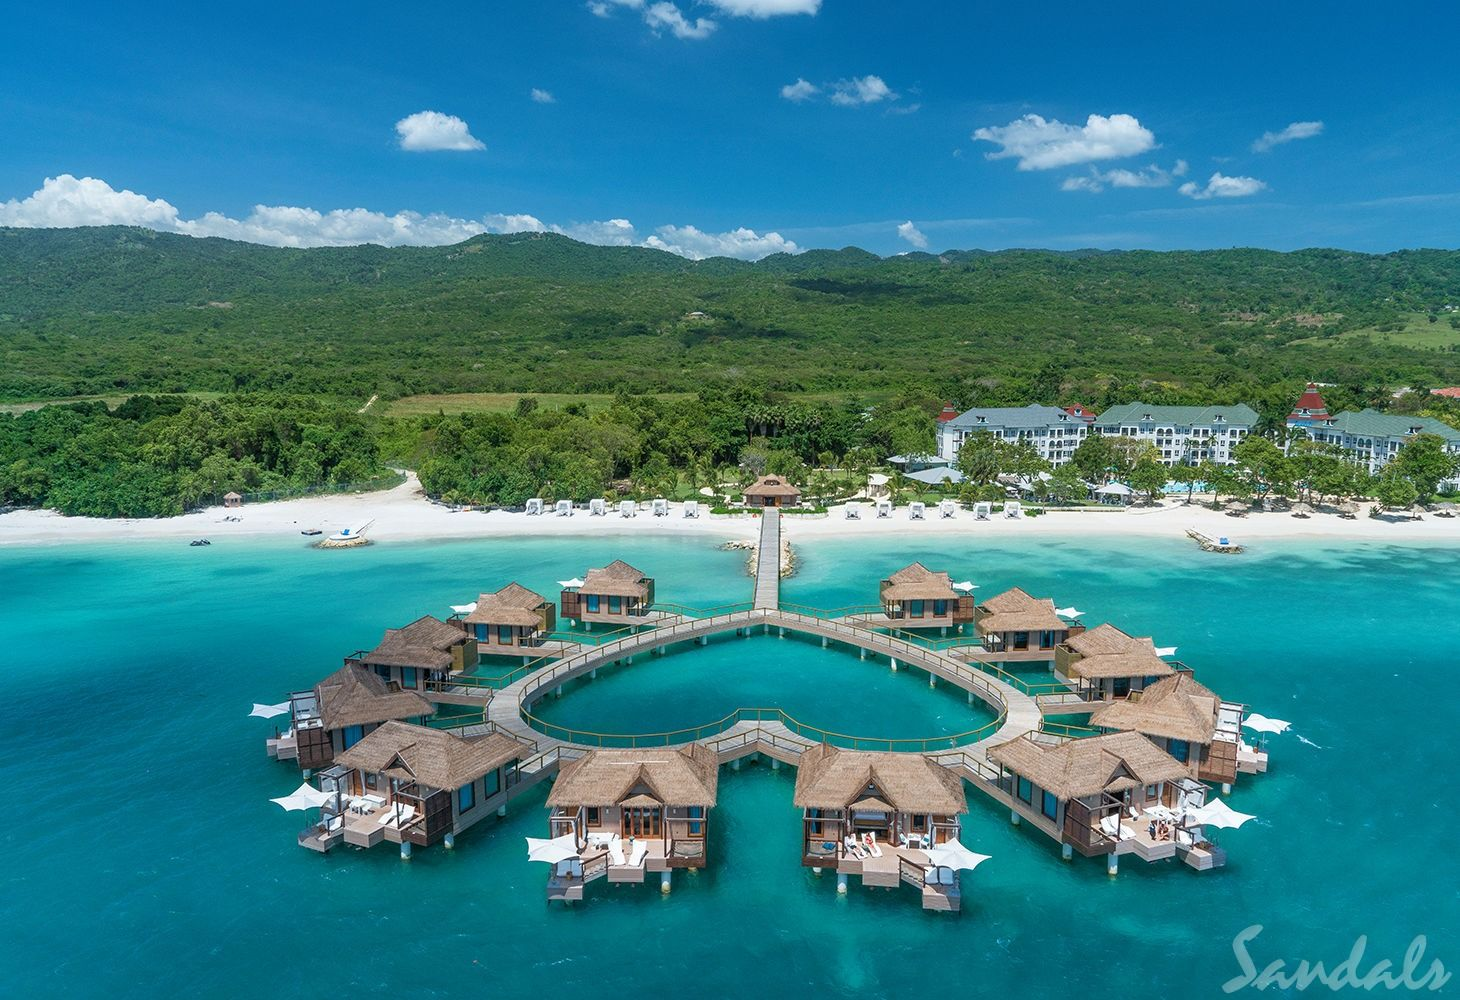 Sandals overwater heart bungalows